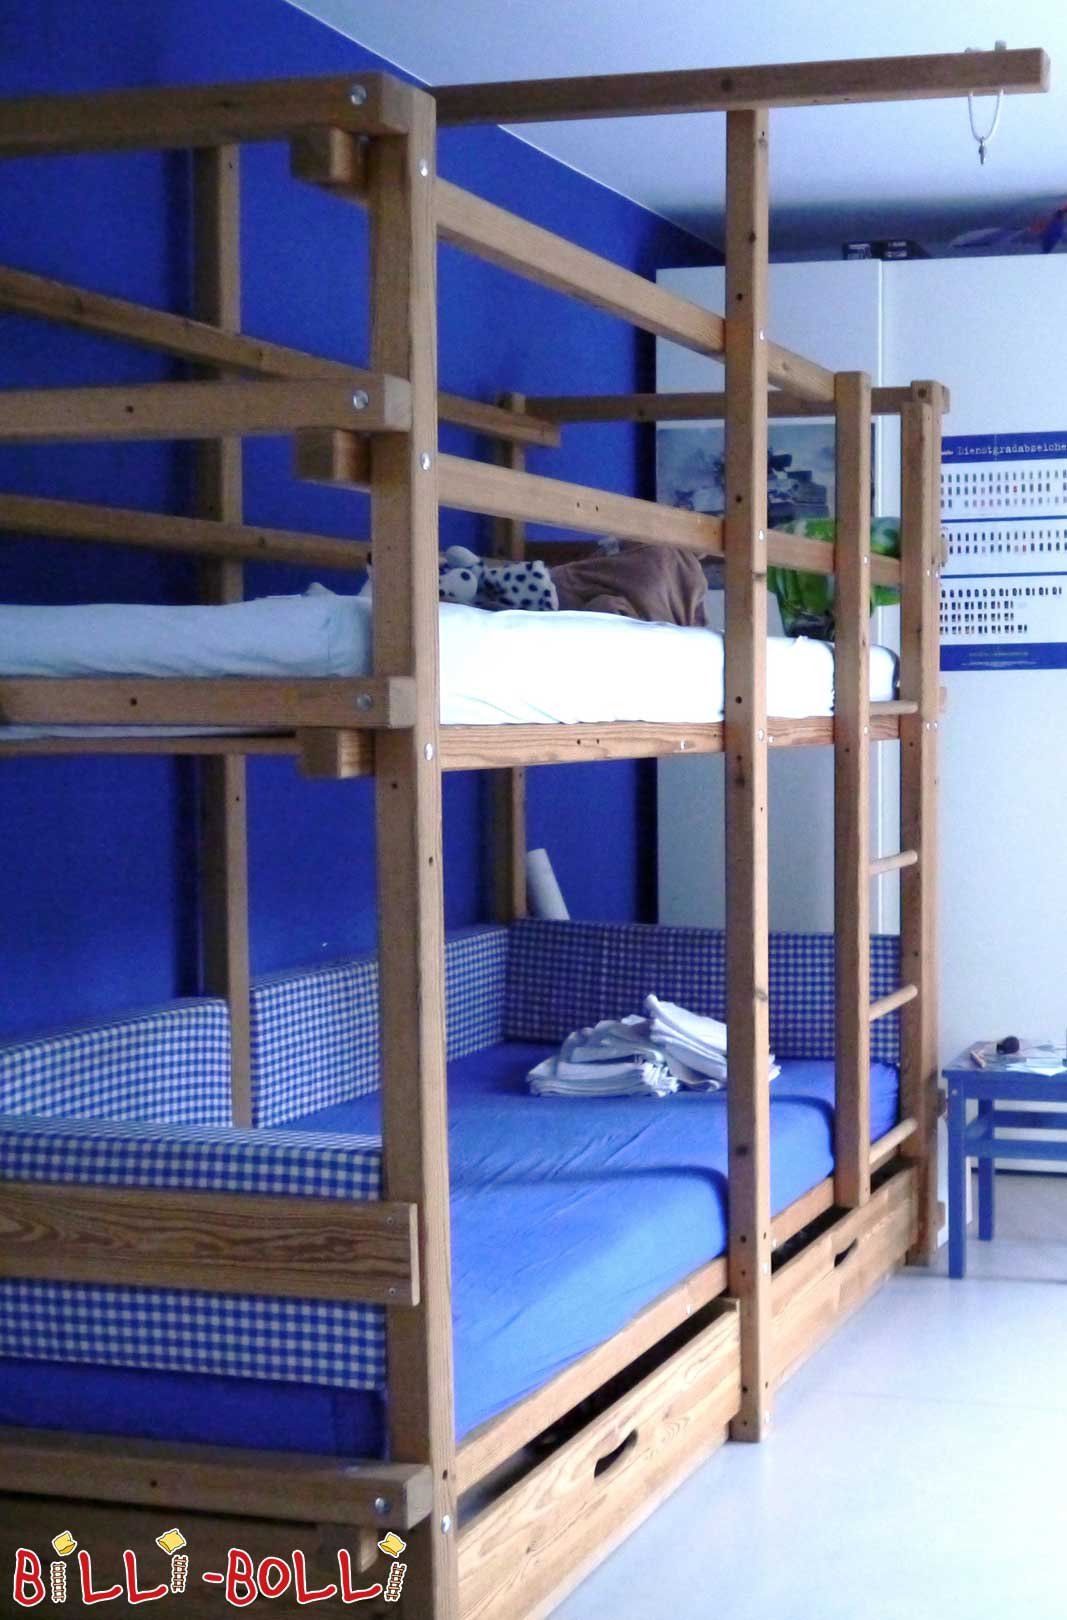 Gullibobett (second hand bunk bed)